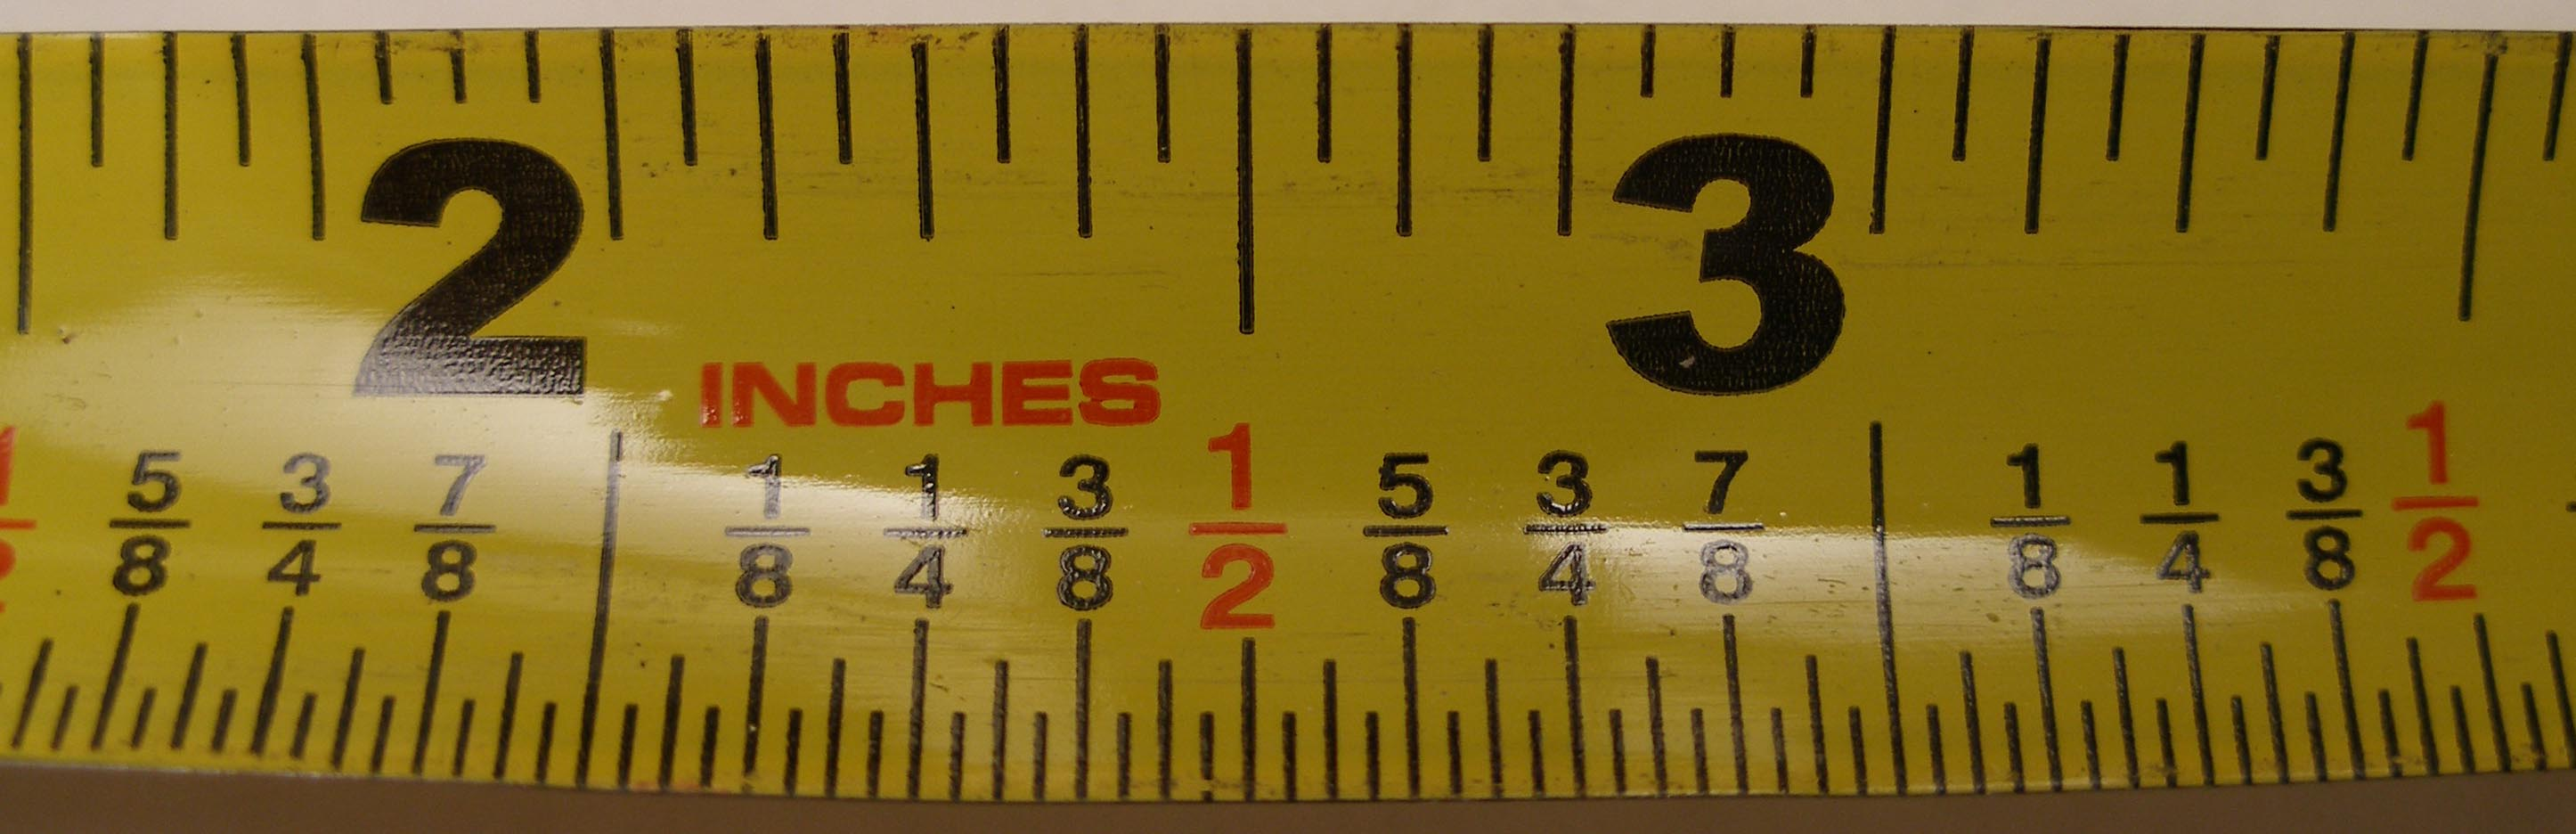 Measuring tape capable of measuring down to 1 32 inch 0 79375 mm